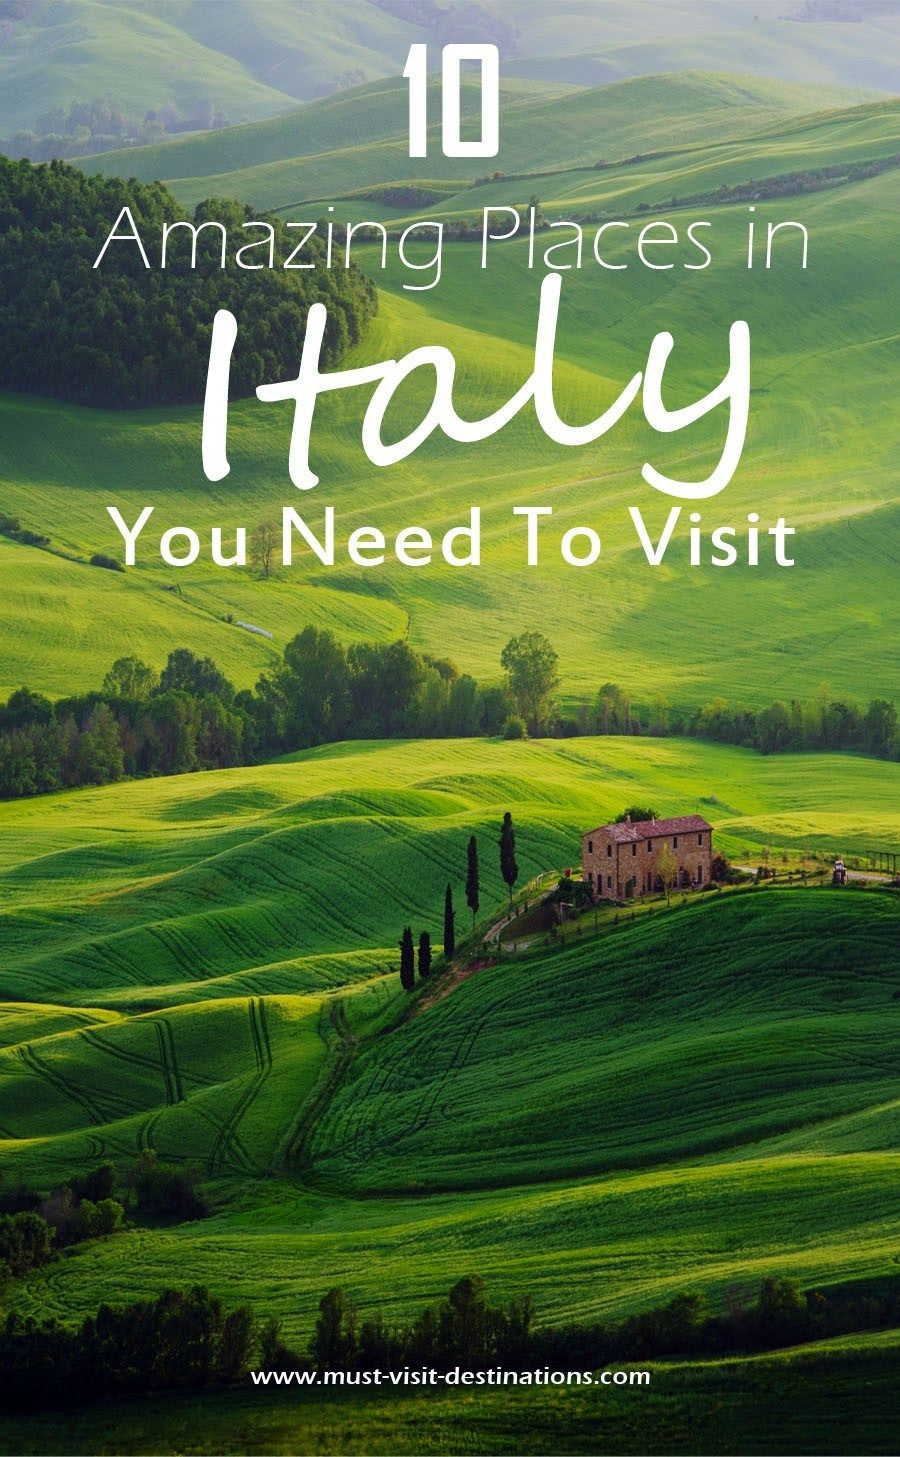 If you were to rent a villa in Italy for a month, where would you stay?